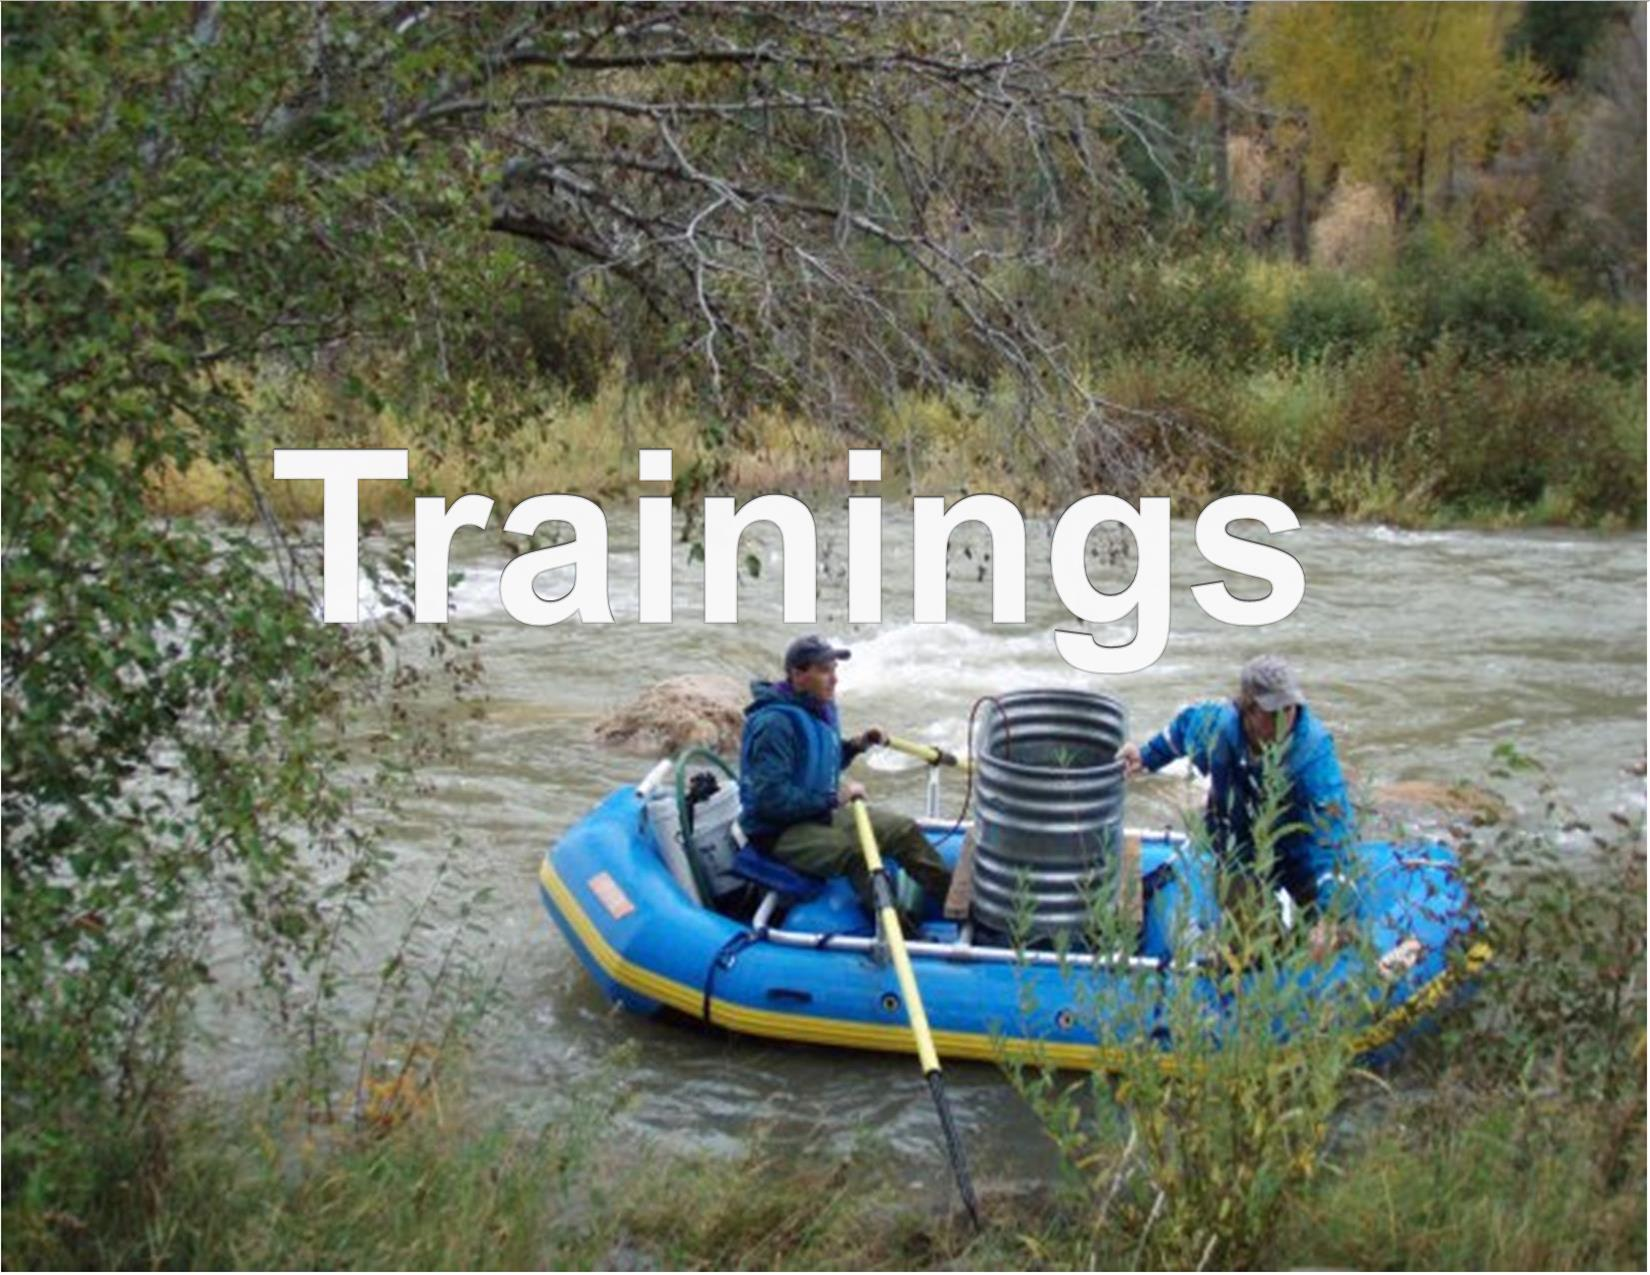 Fish stocking by boat, Division of Wildlife, Jason Fearheiley, Colorado Parks and Wildlife, 10/28/2009